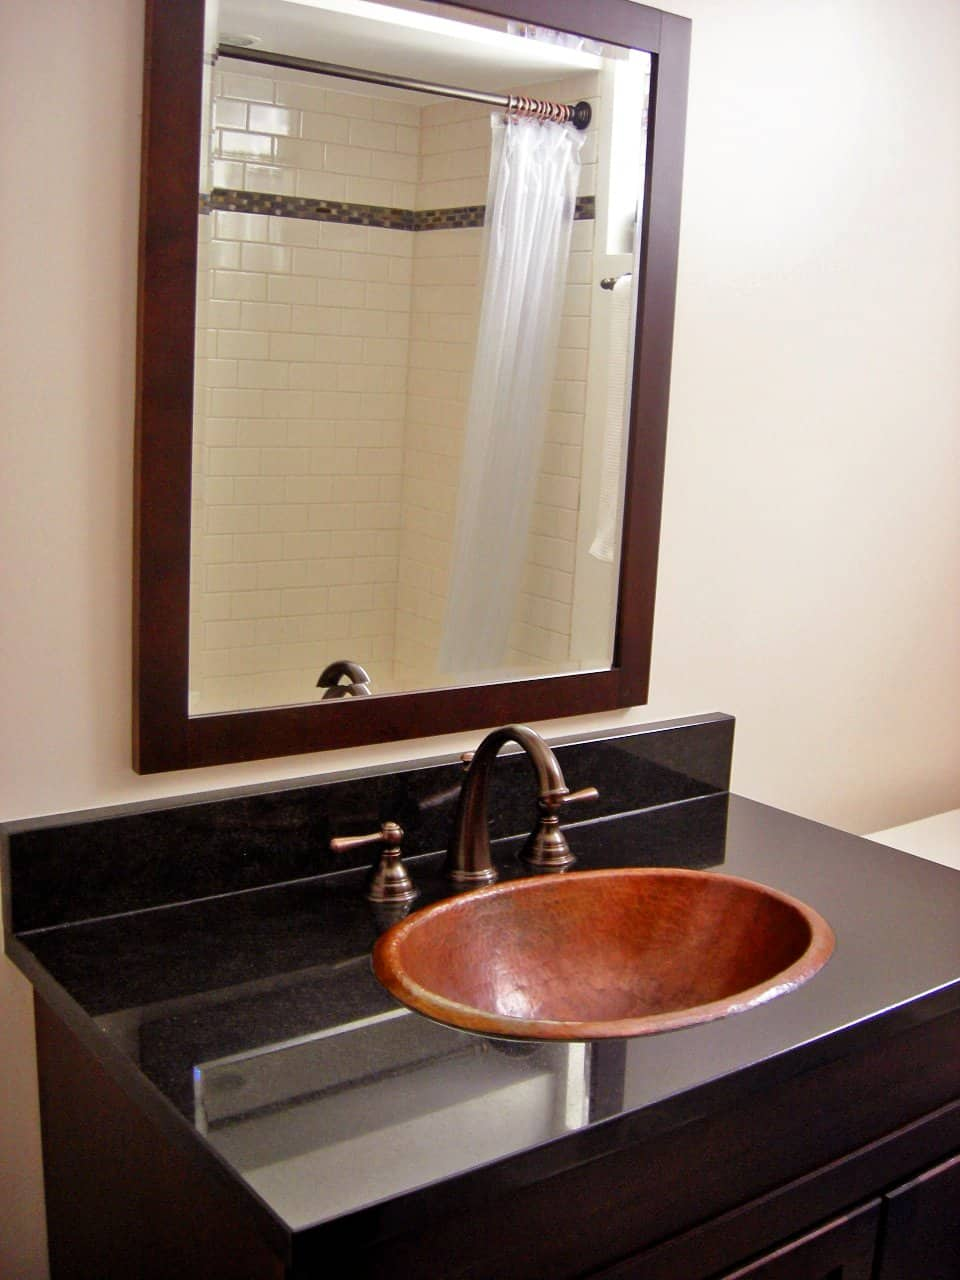 Bathroom Vanity With 17 Inch Oval Copper Sink And Black Counter